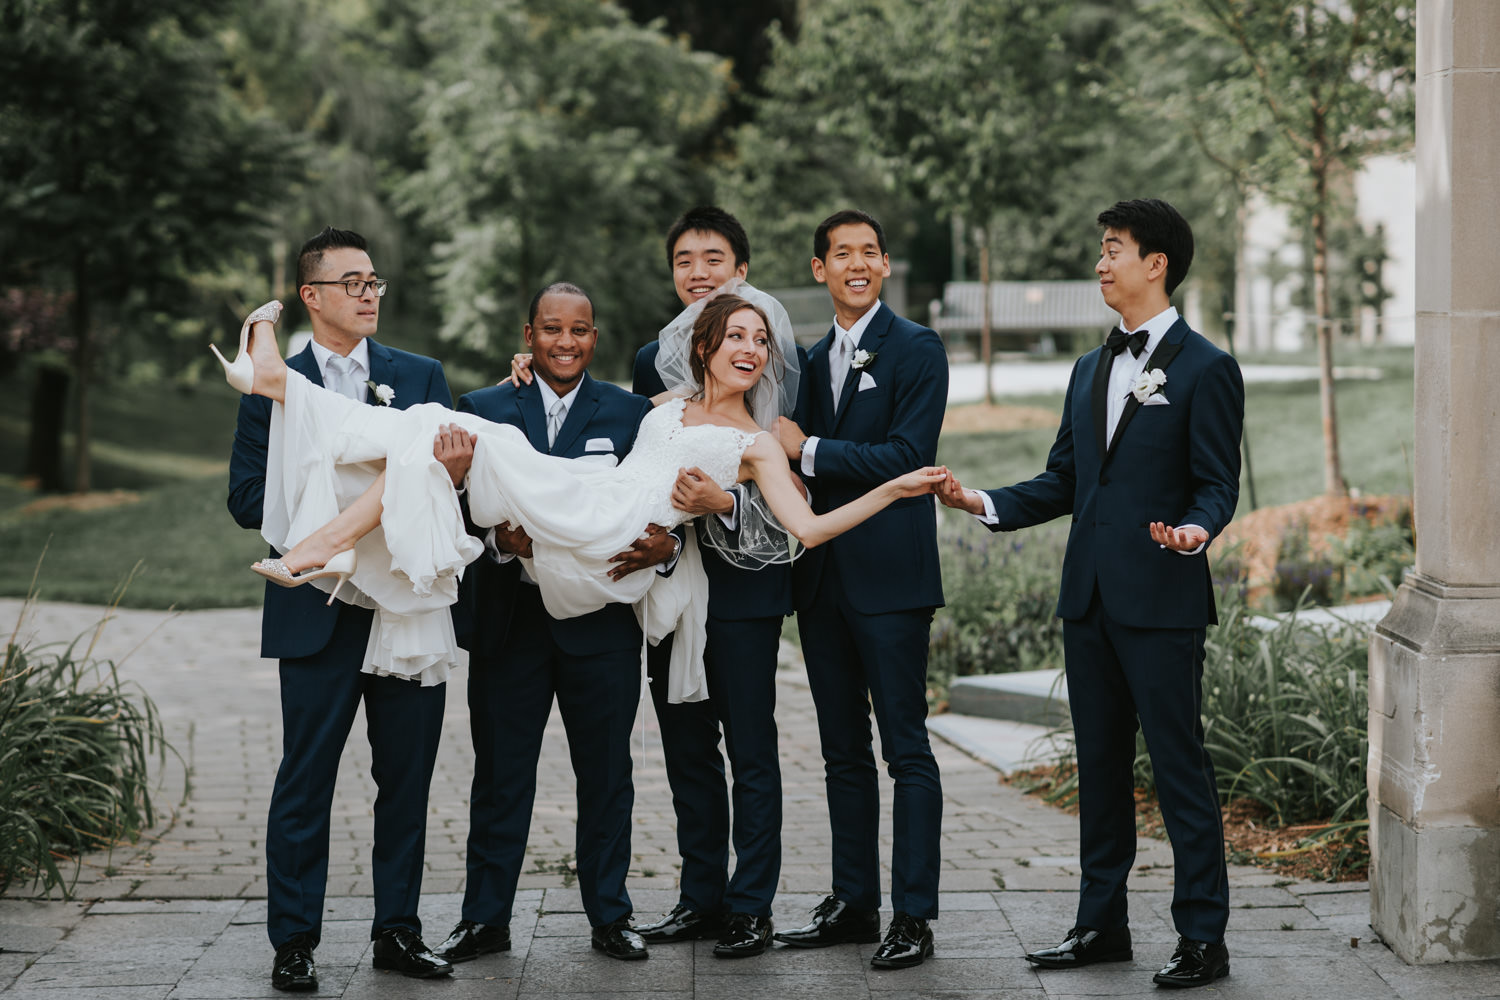 Philosopher's Walk Wedding Party Photo